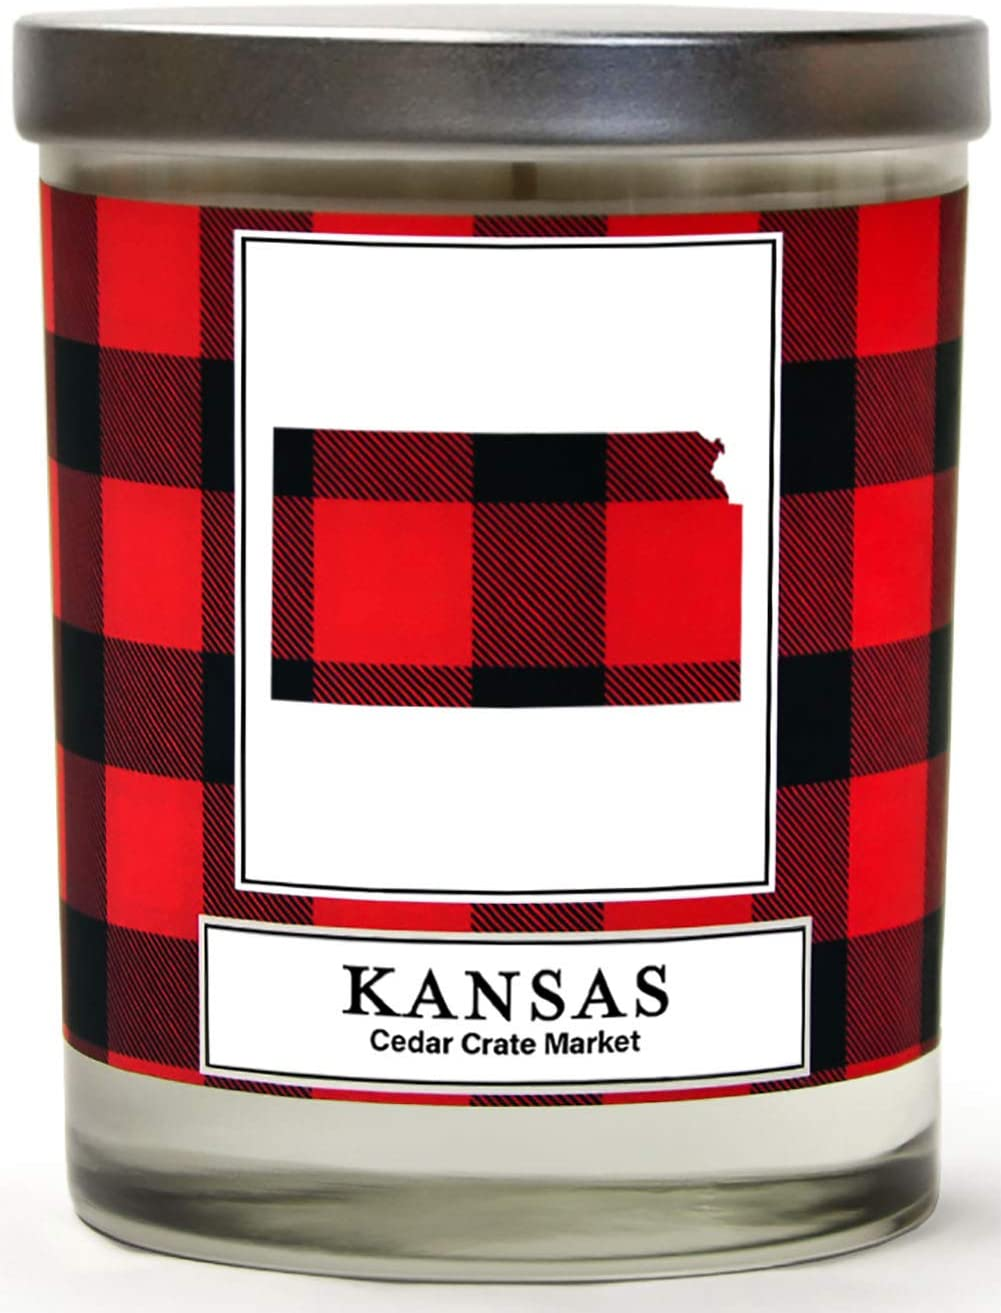 Kansas Buffalo Plaid Scented Soy Candle | Fraser Fir, Pine Needle, Cedarwood | 10 Oz. Glass Jar Candle | Made in The USA | Decorative Candles | Going Away Gifts for Friends | State Candles